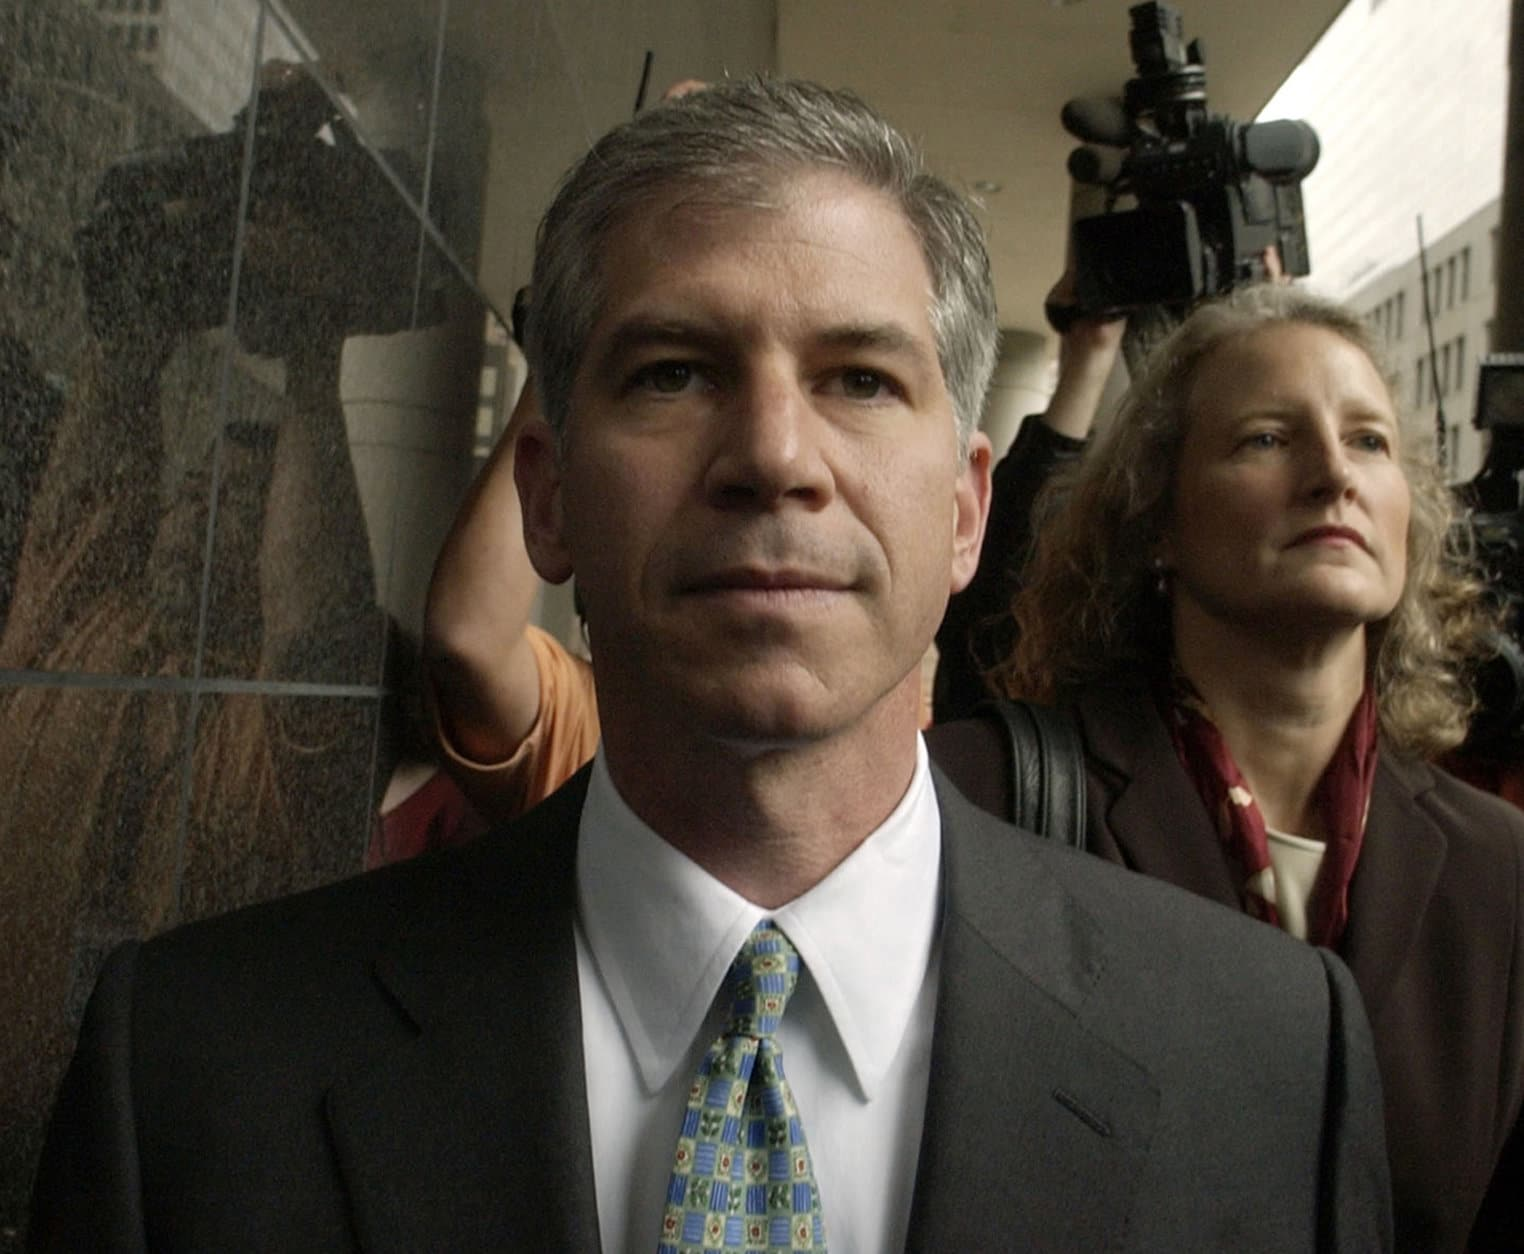 FILE - In this Jan. 14, 2004, file photo former Enron finance chief Andrew Fastow, center, arrives for court in Houston with his attorney Jan Little. The Federal Bureau of Prisons website shows Fastow was moved from a Pollack, La., prison to a low-security community corrections facility in Houston. Fastow is considered the mastermind behind the financial schemes that doomed Enron. (AP Photo/David J. Phillip, file)